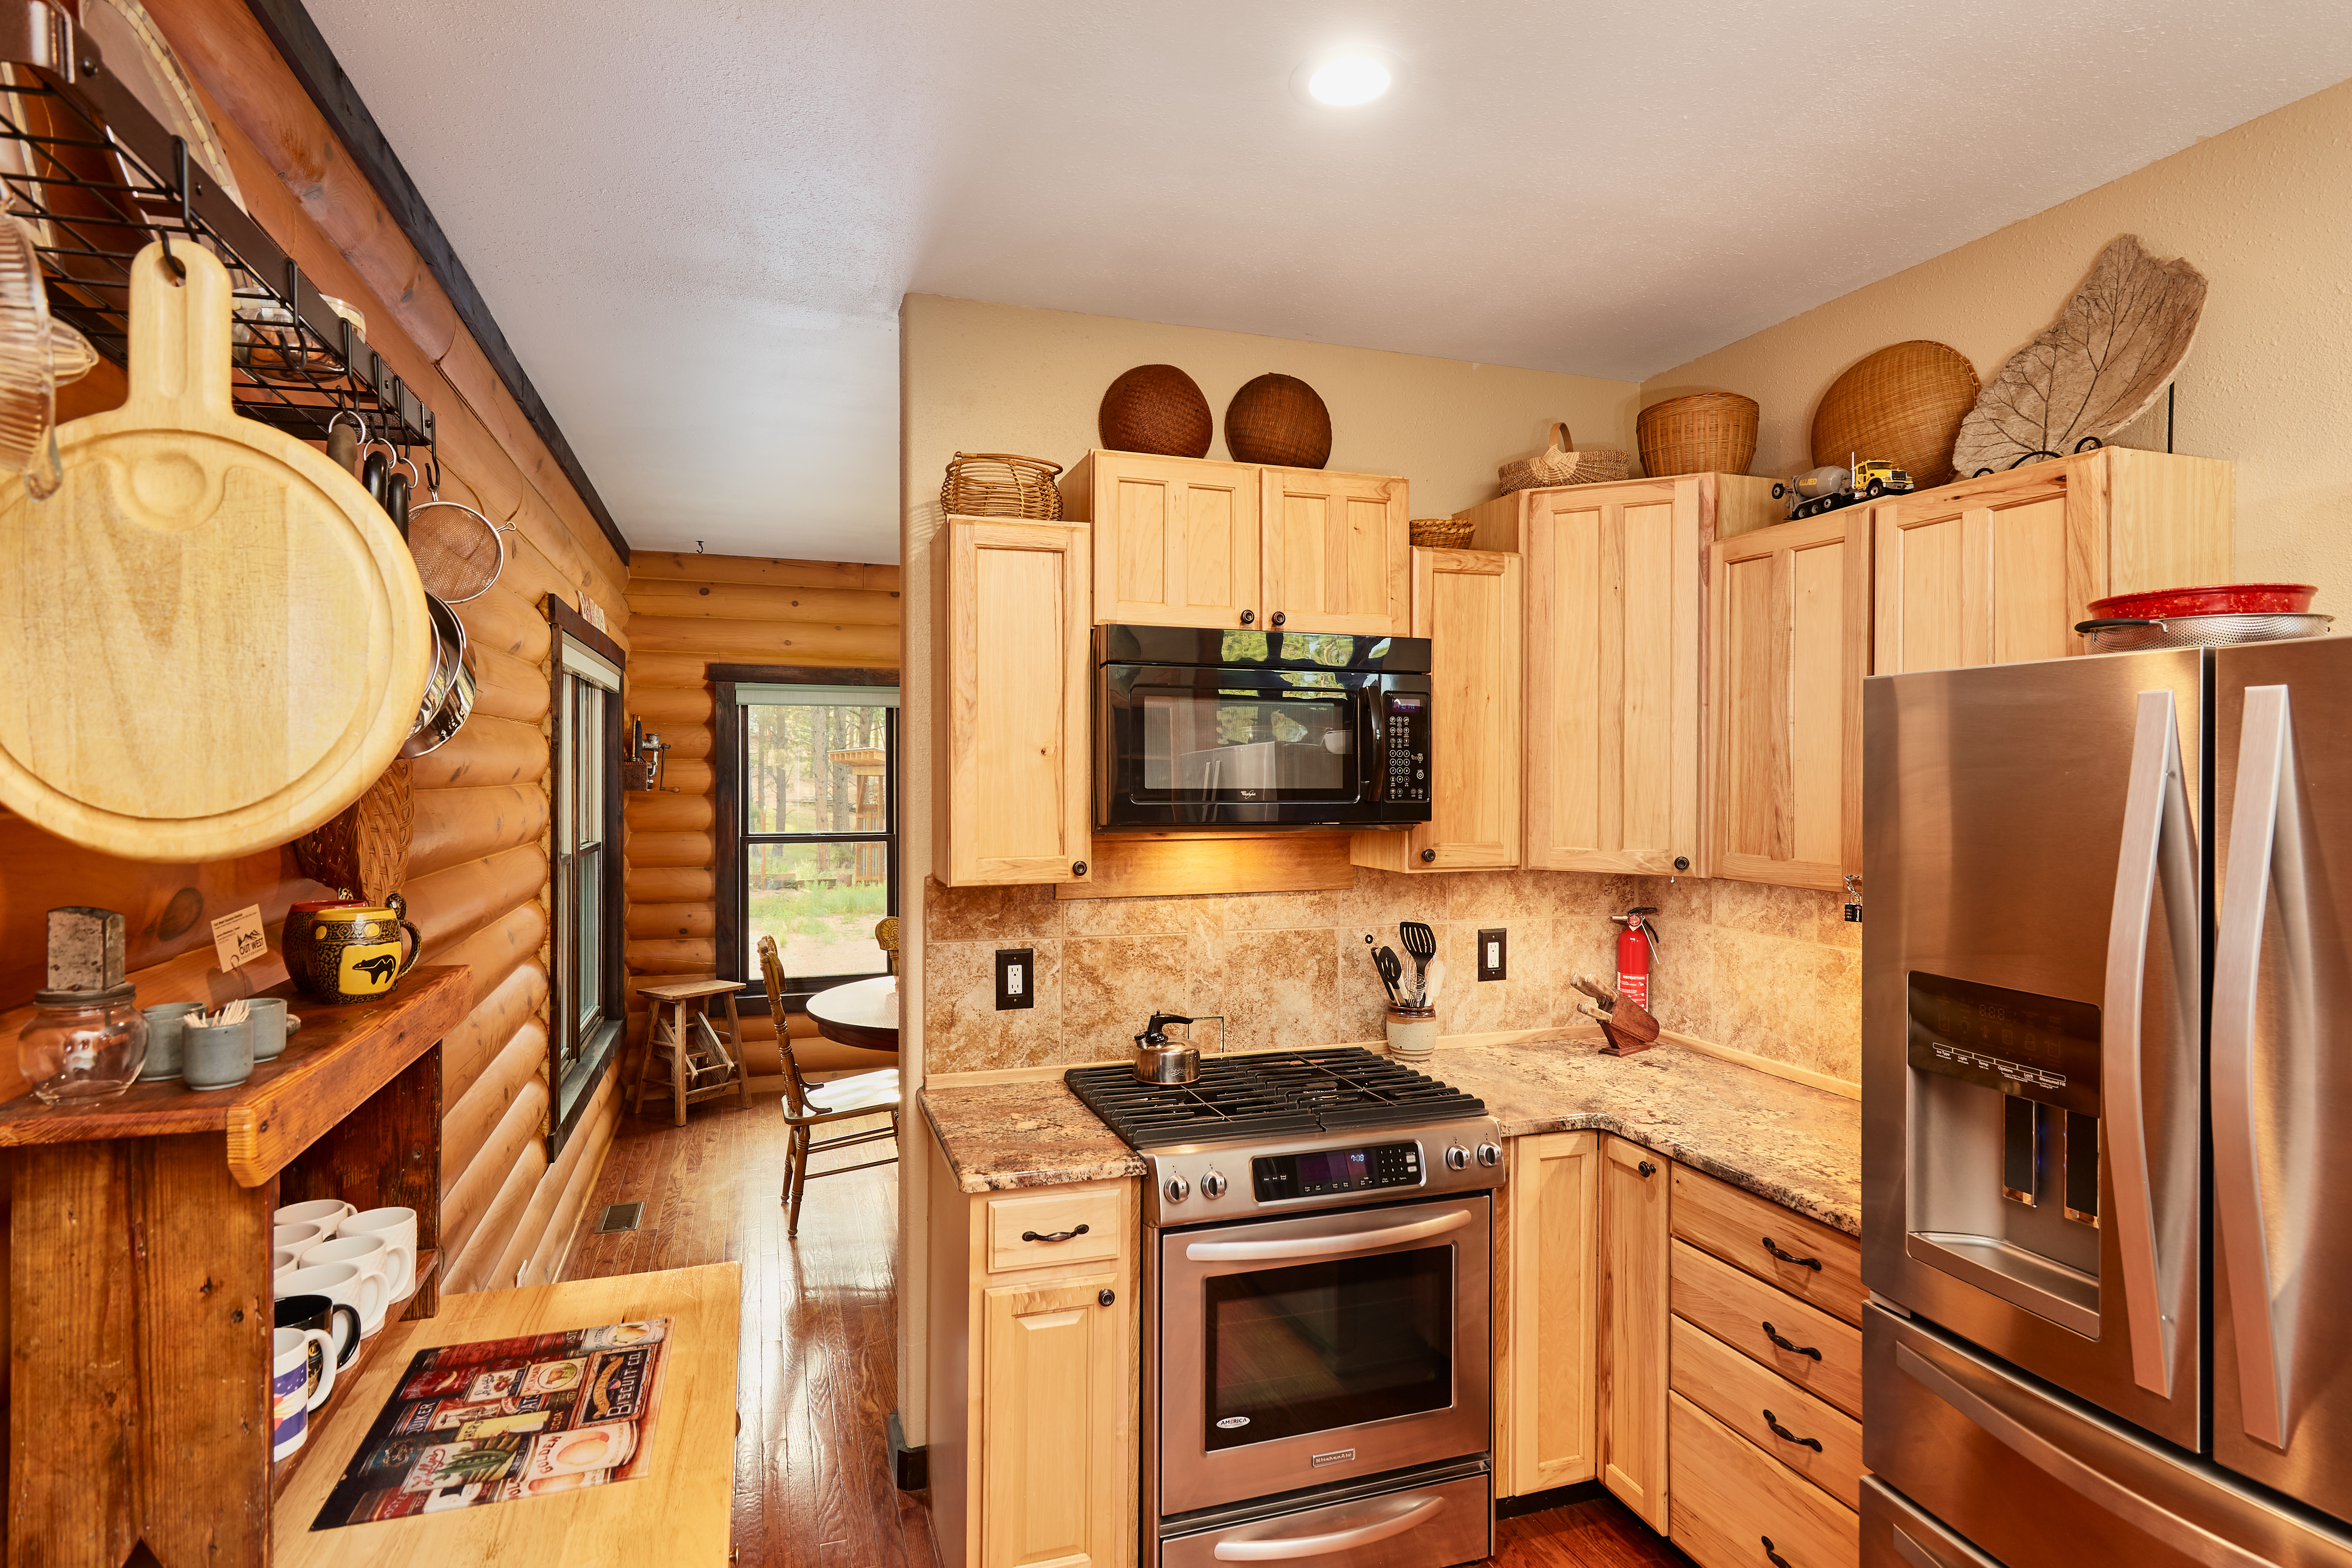 The kitchen is fully stocked with everything you need to create a wonderful meal.